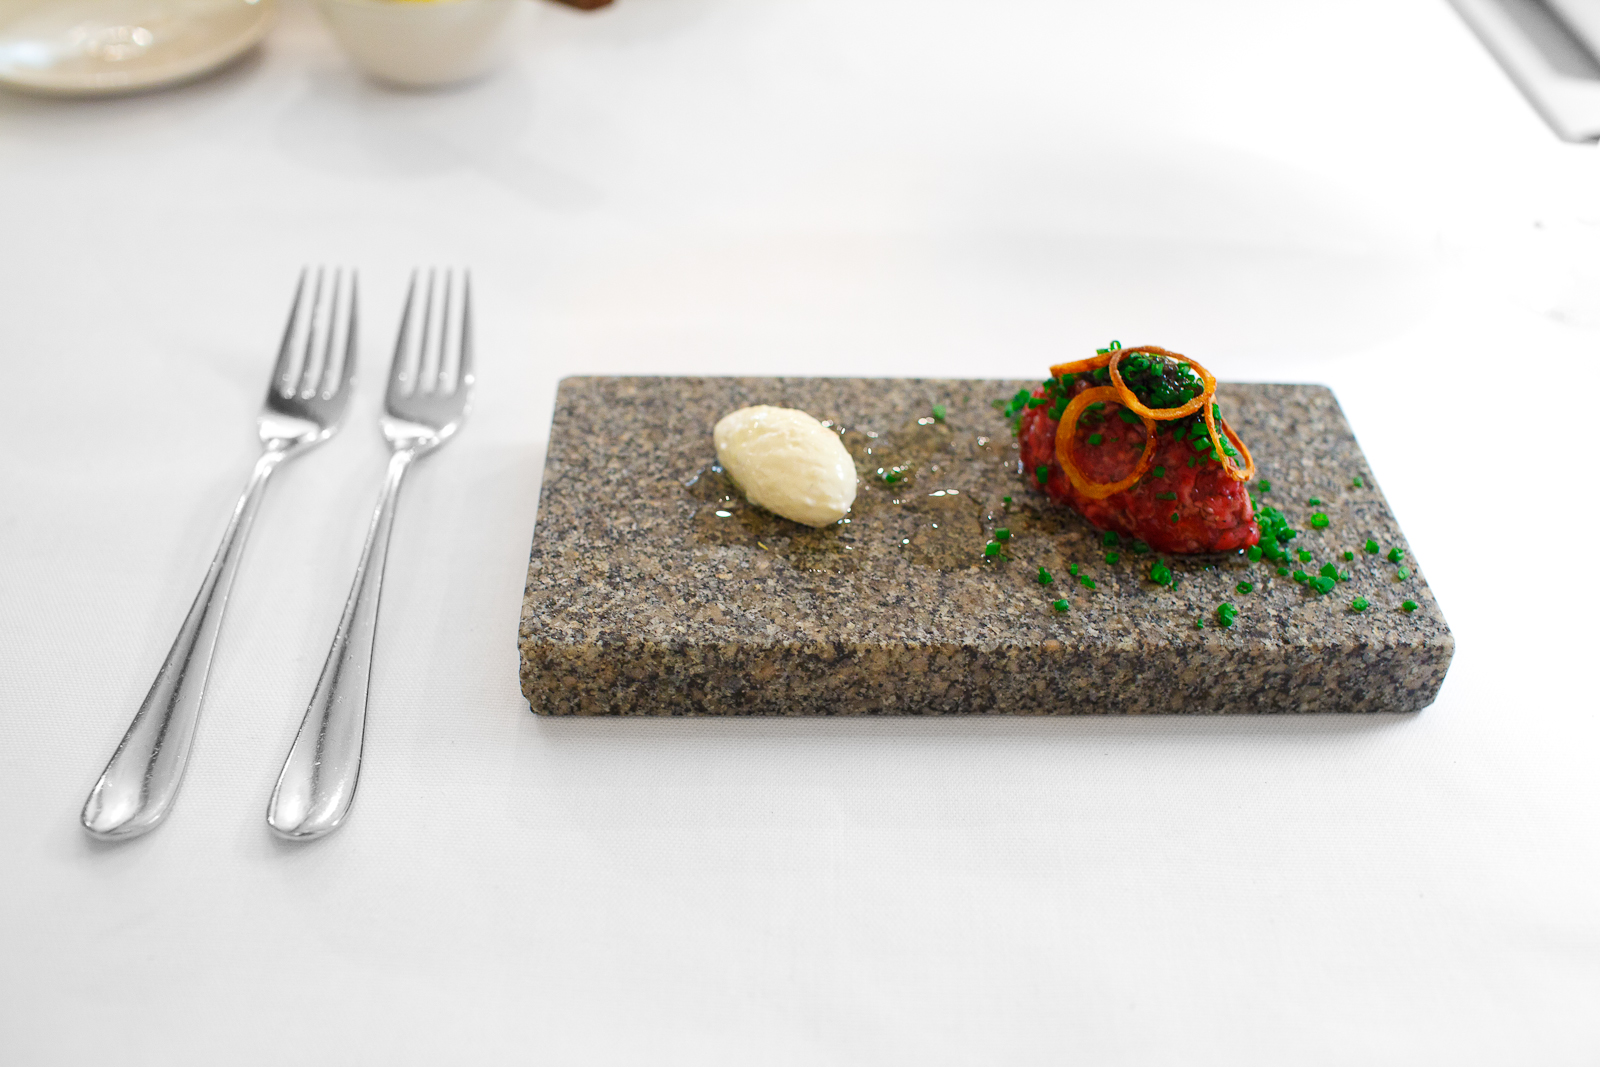 6th Course: Second, a coal-flamed tartar of the prime rib flavored with tallow and ash, served with farmed caviar, sour cream, and cold-smoked eel from Mälaren